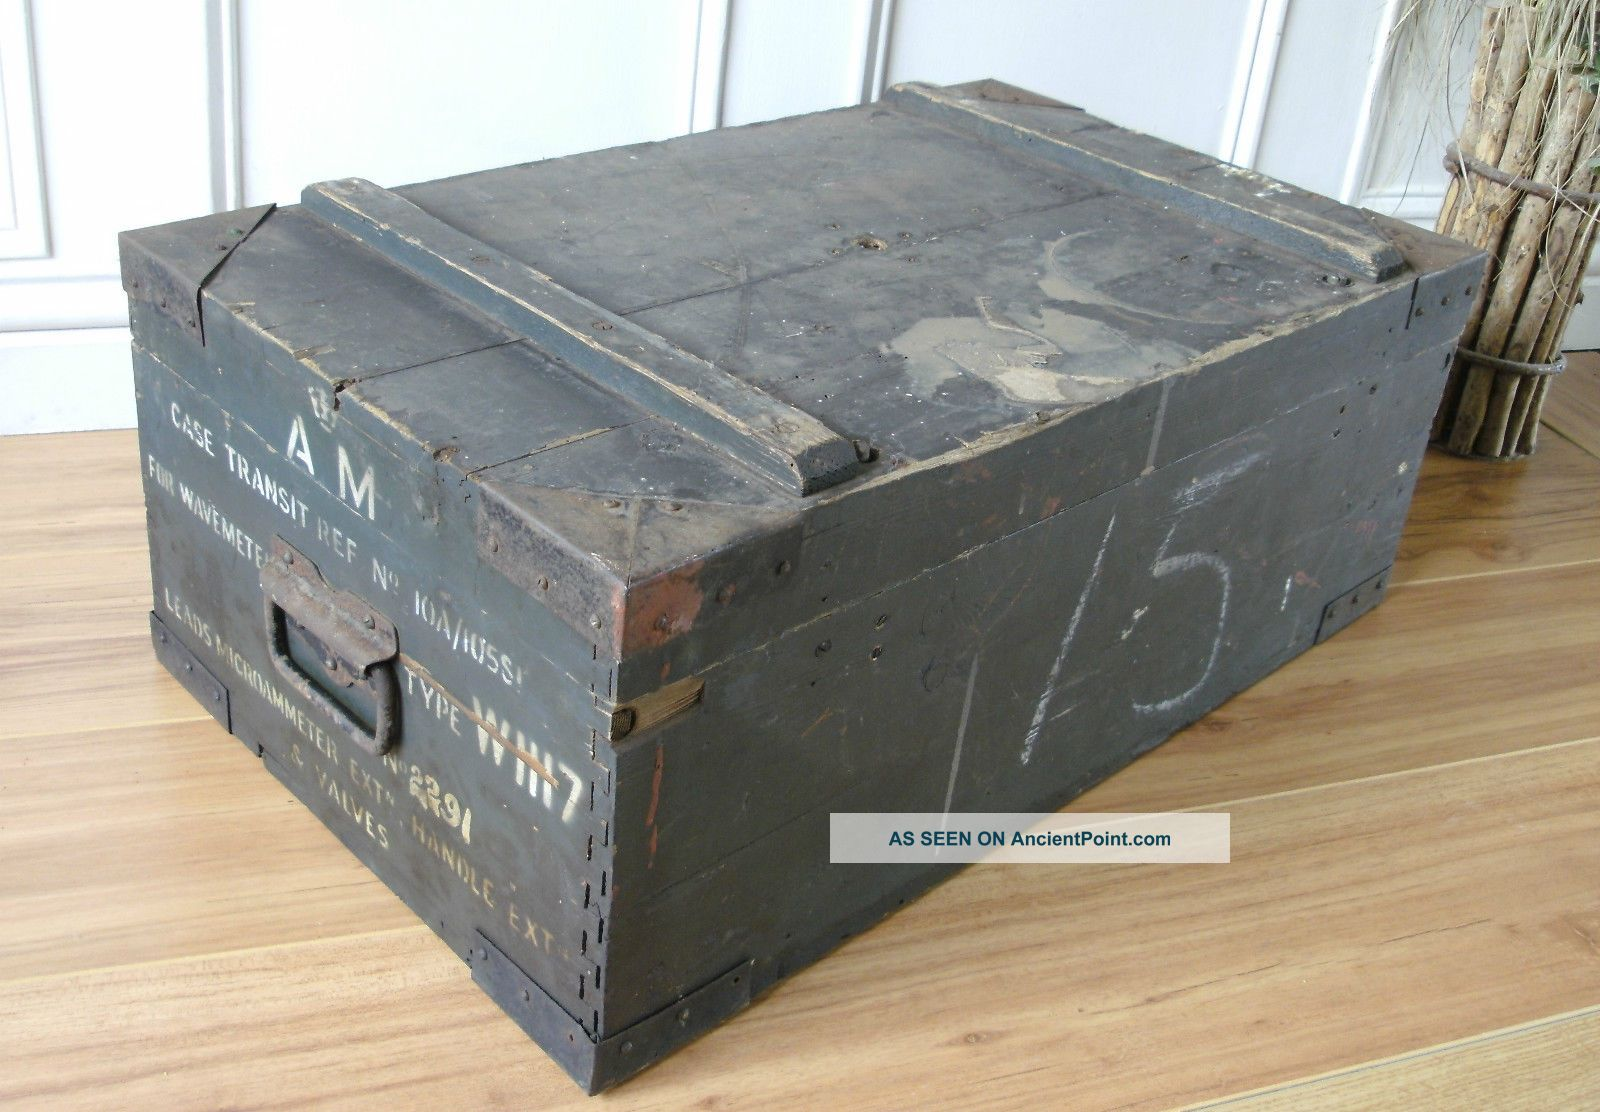 Vintage Pine Box Wavemeter Box 1900-1950 photo